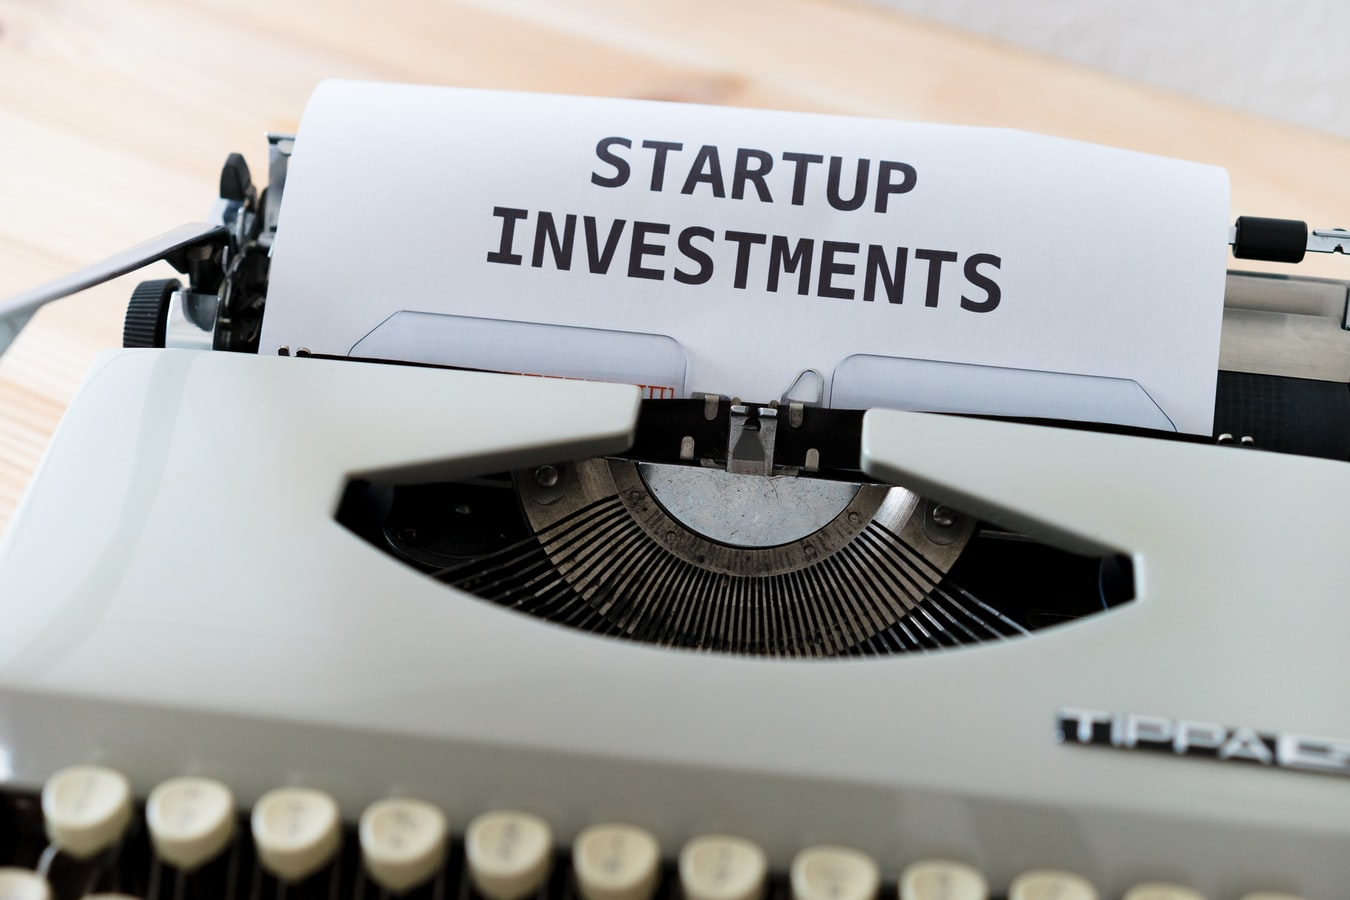 Helvetia startup investment